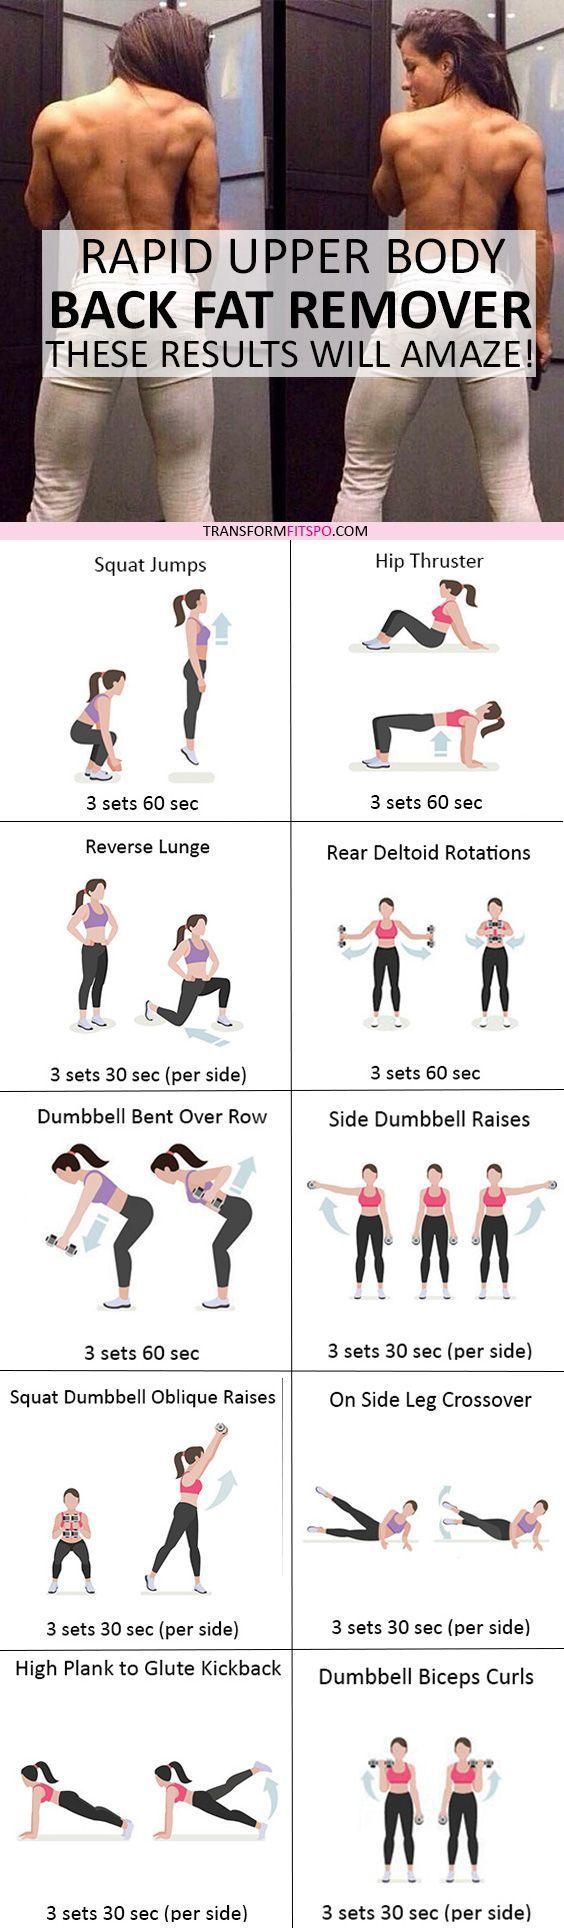 #womensworkout #workout #female fitness Repin and share if this workout gave you a toned back! Click the pin for the full workout. diet workout motivation